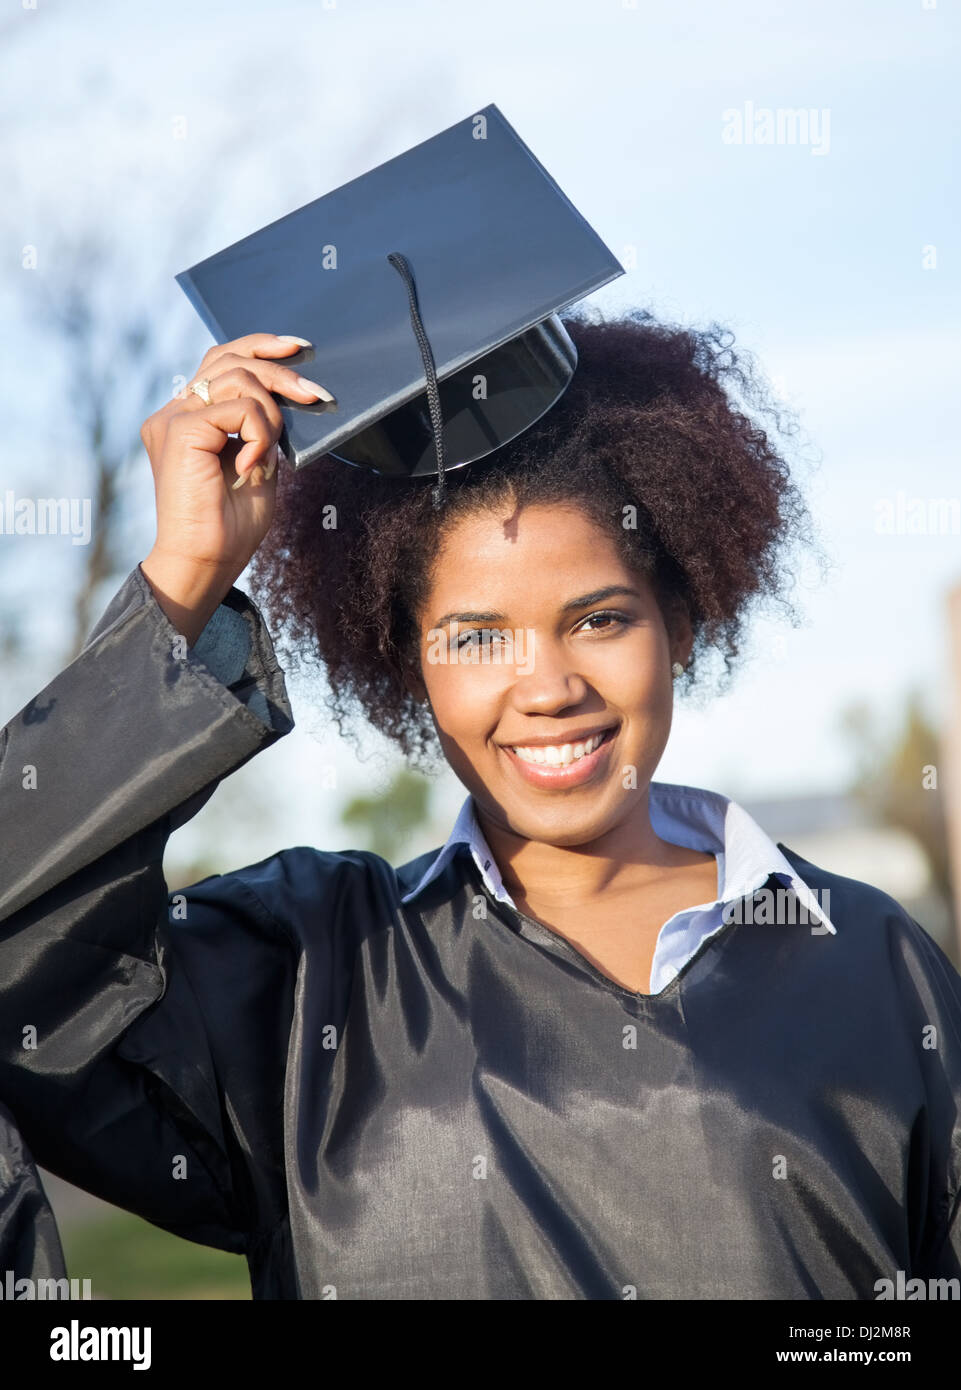 Woman In Graduation Gown Wearing Mortar Board On Campus Stock Photo ...